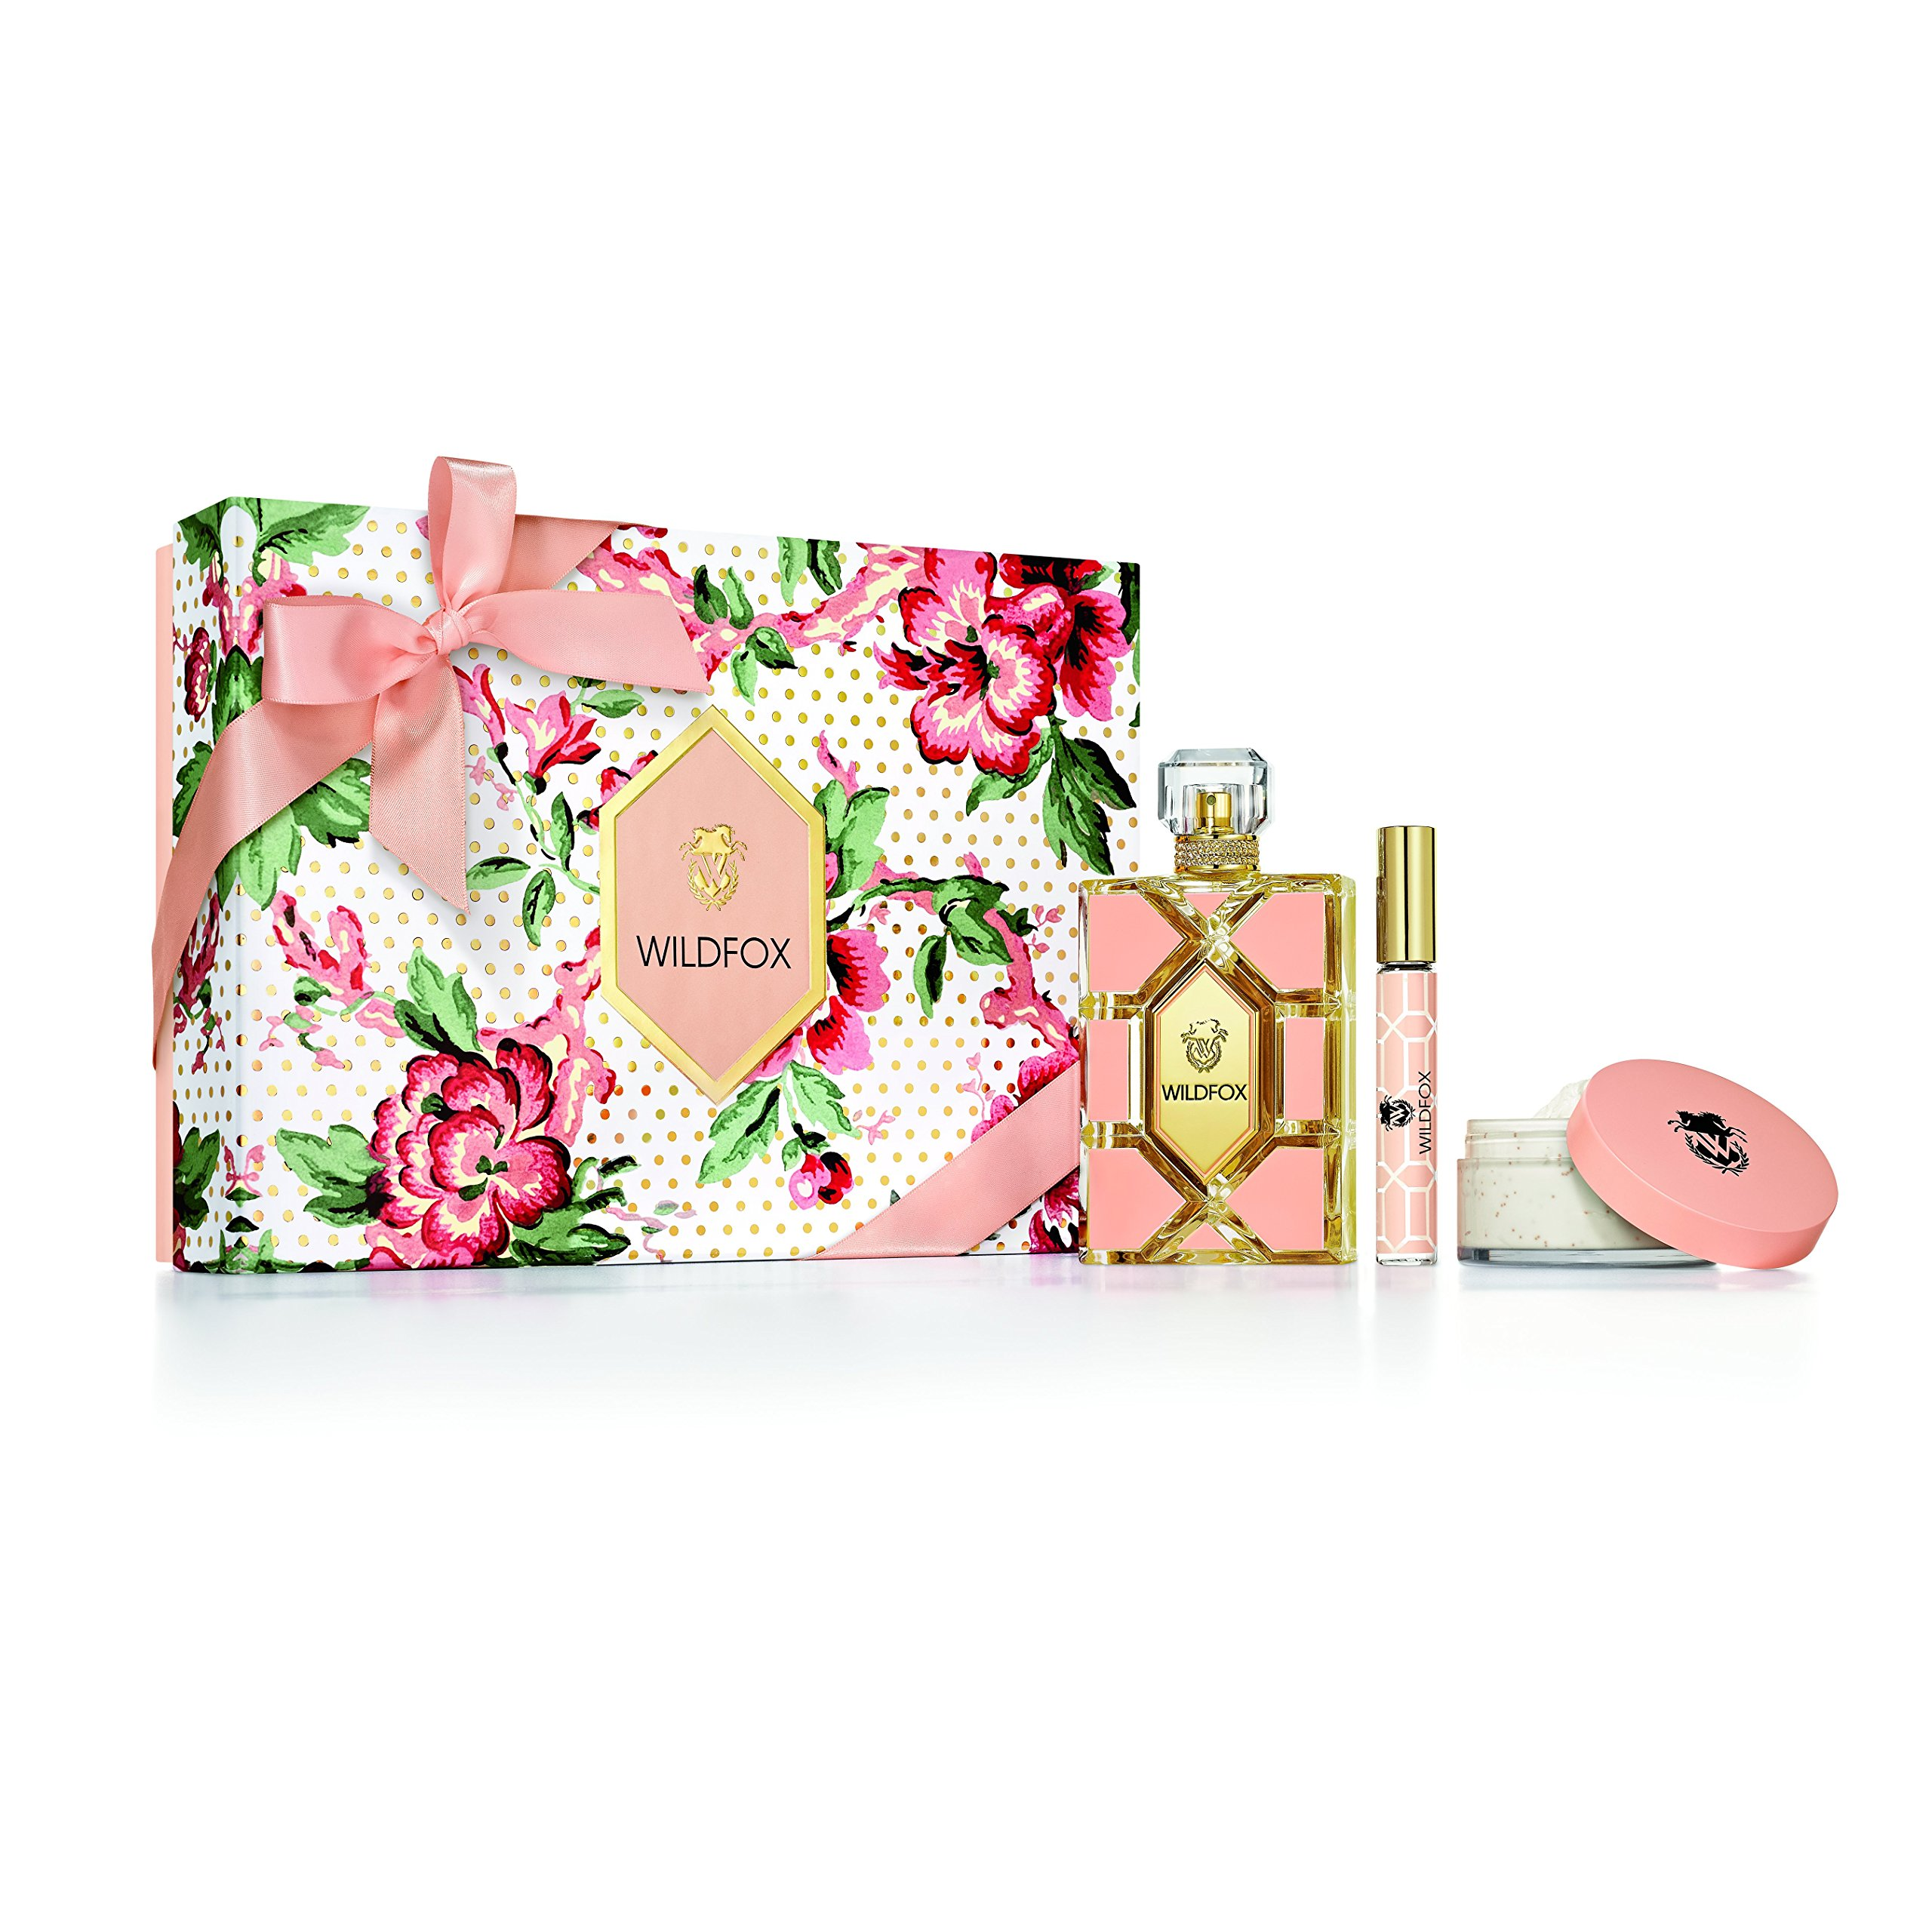 Wildfox Women's Perfume 3 Piece Value Gift Set,  includes 3.4 fl. Oz perfume spray, 3 oz. body lotion frosting, and .33 fl. Oz. perfume rollerball